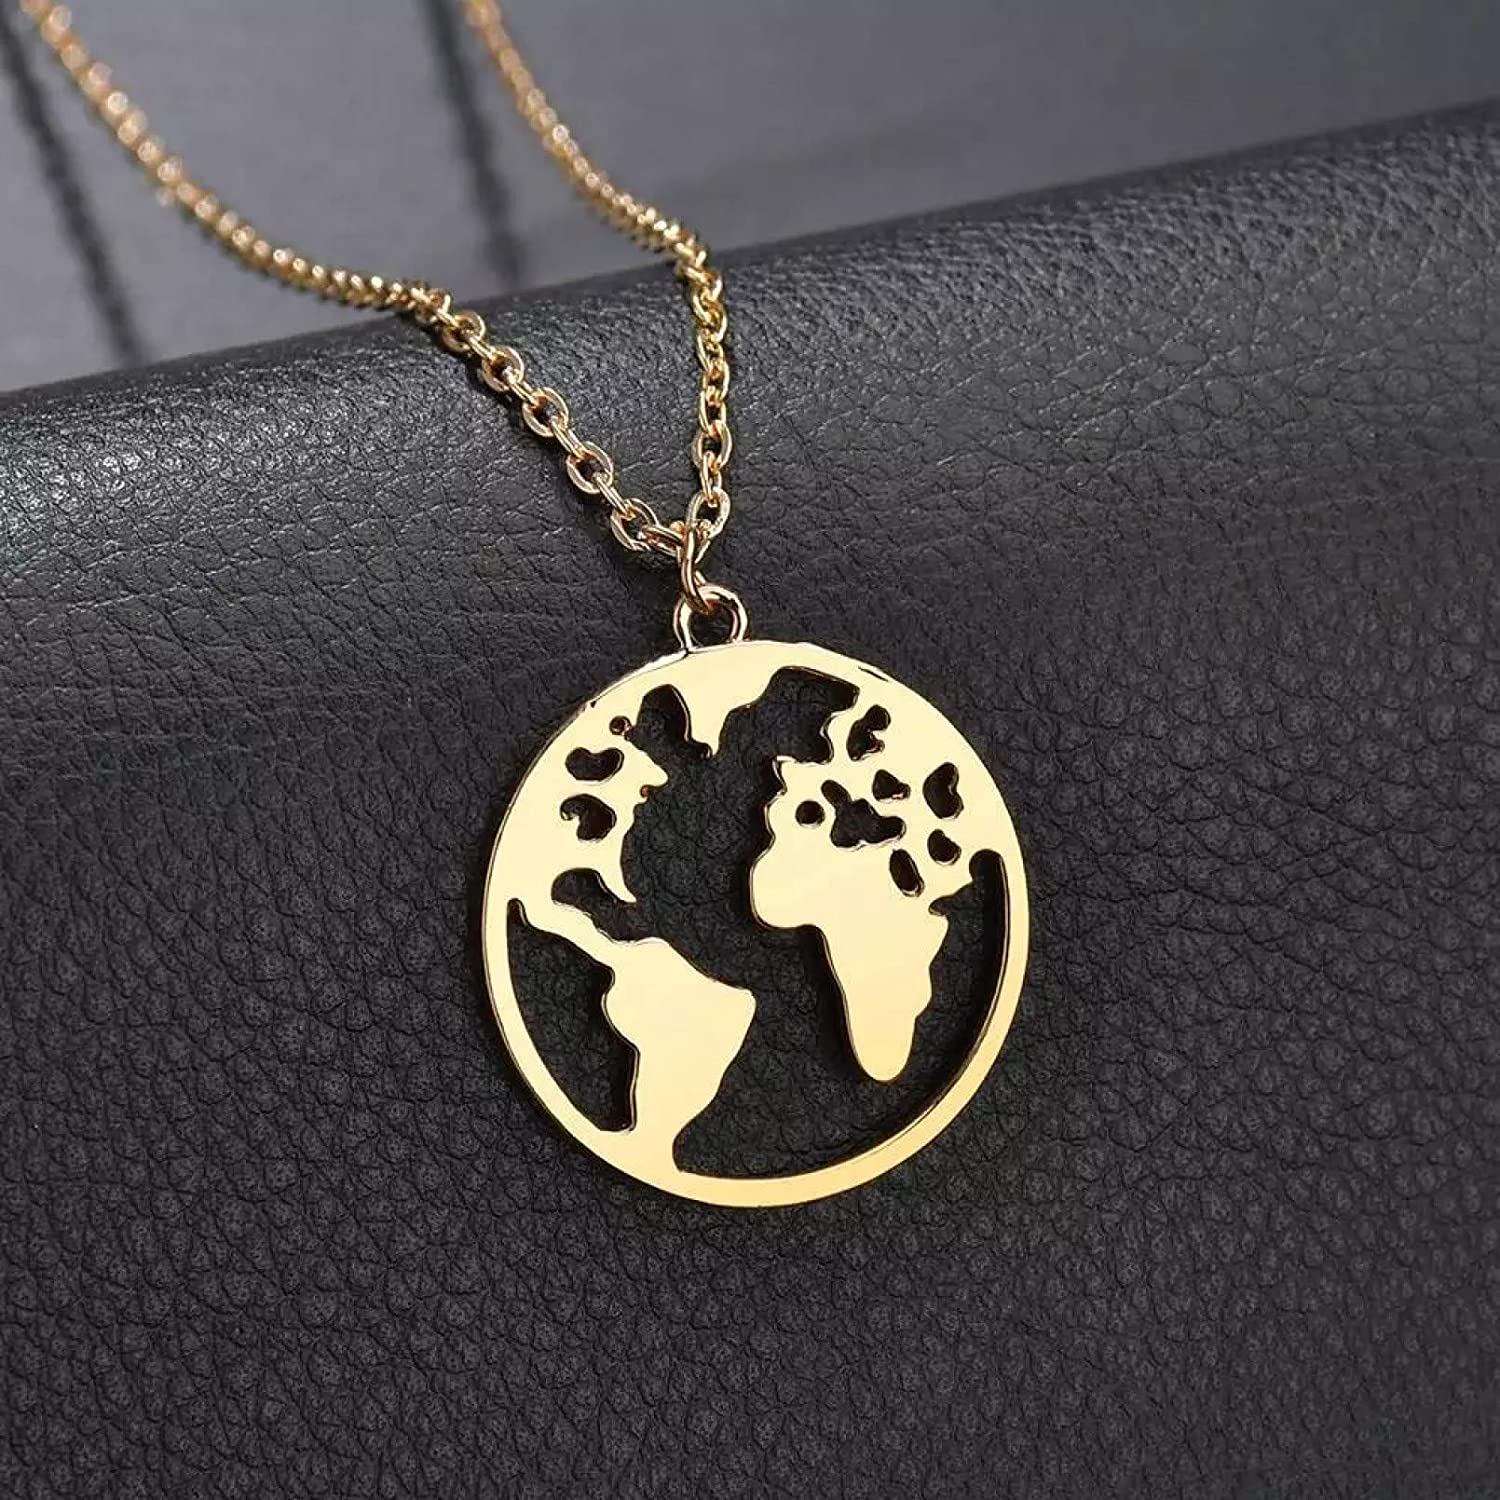 N/A Necklace Pendant Fashion Vintage Gold Color World Map Pendant Necklace for Women Round Chain Charm Choker Collares Necklace Jewelry Halloween Christmas Birthday Party Gift